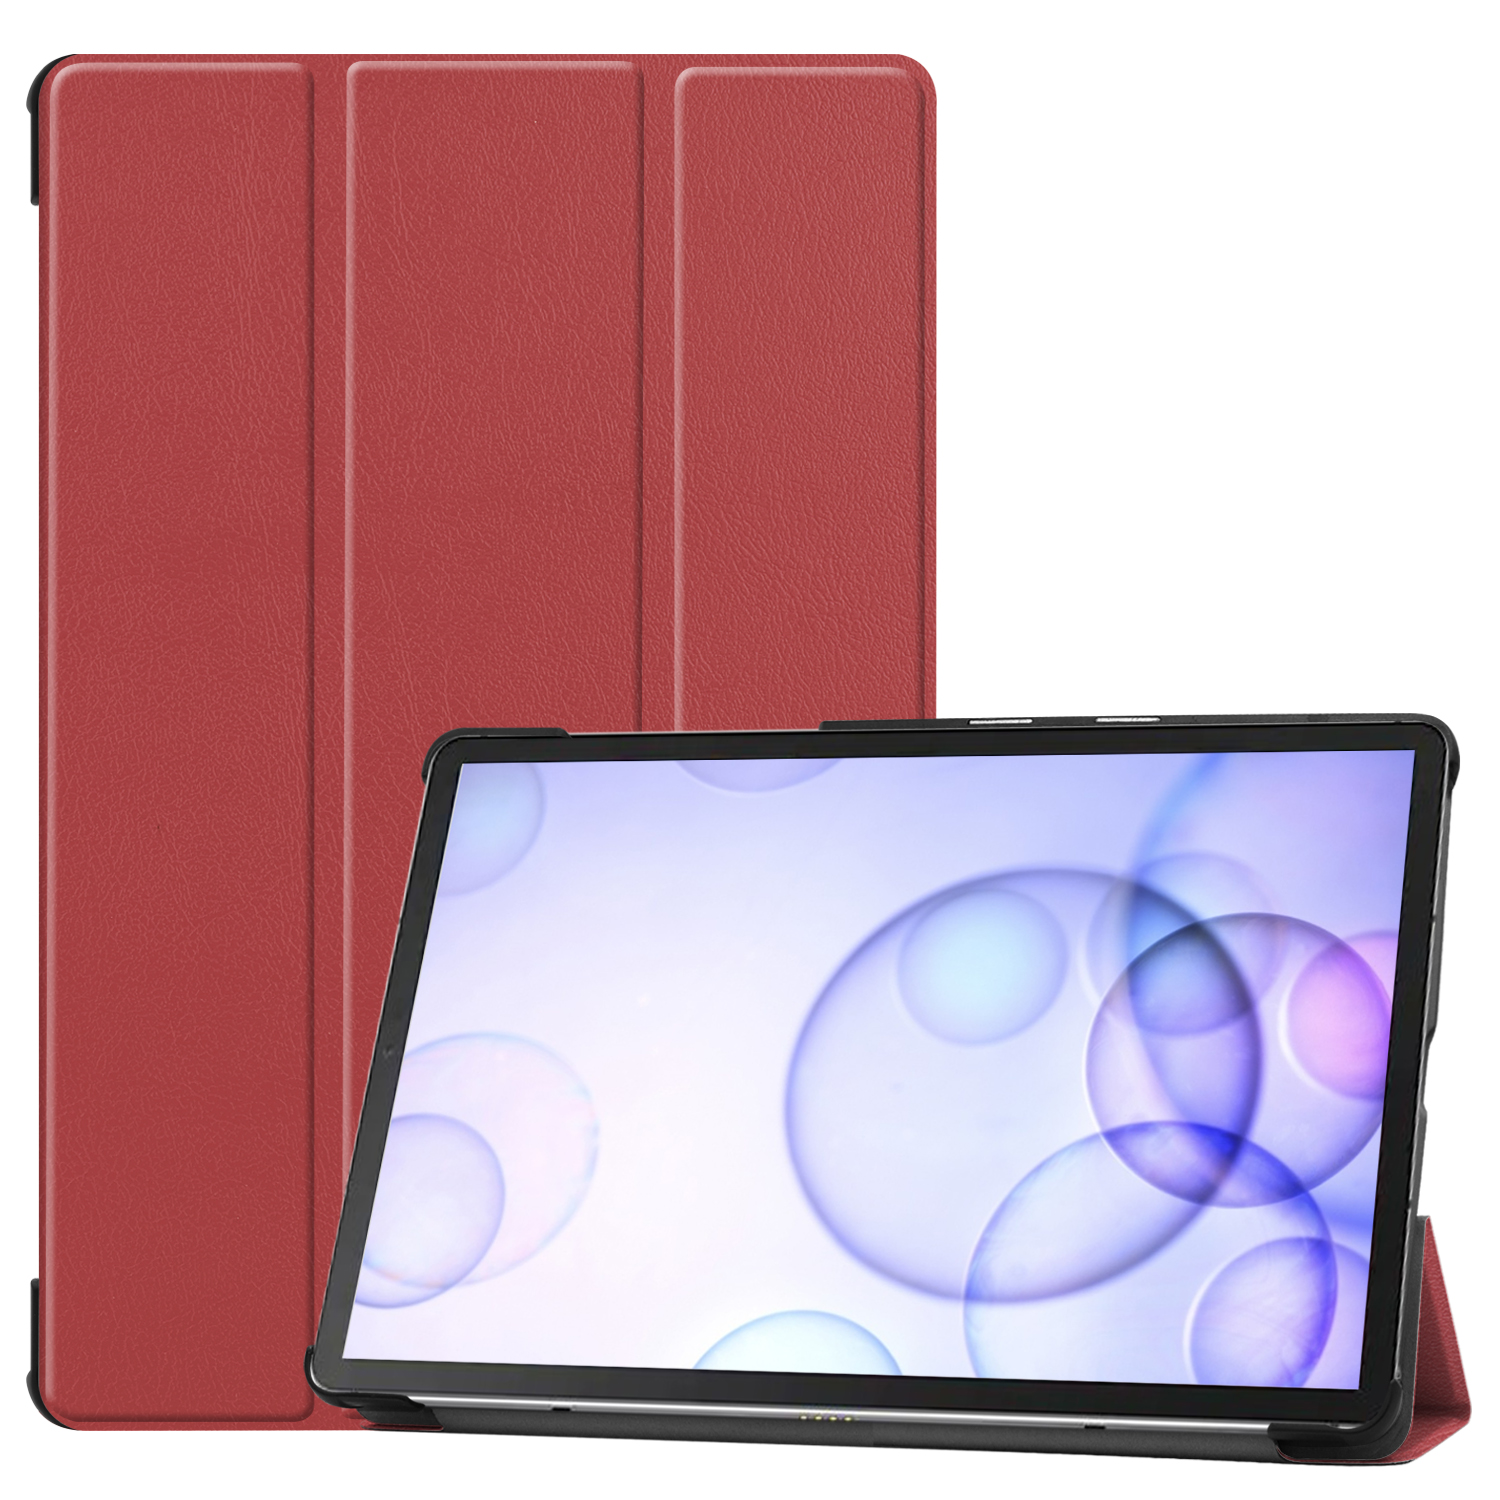 For Sumsung S6 TAB S6 10.5Inch T860 Fall Resistant 3Folding Smart Stay Laptop Protective Case Red wine_TAB S6 2019 T860